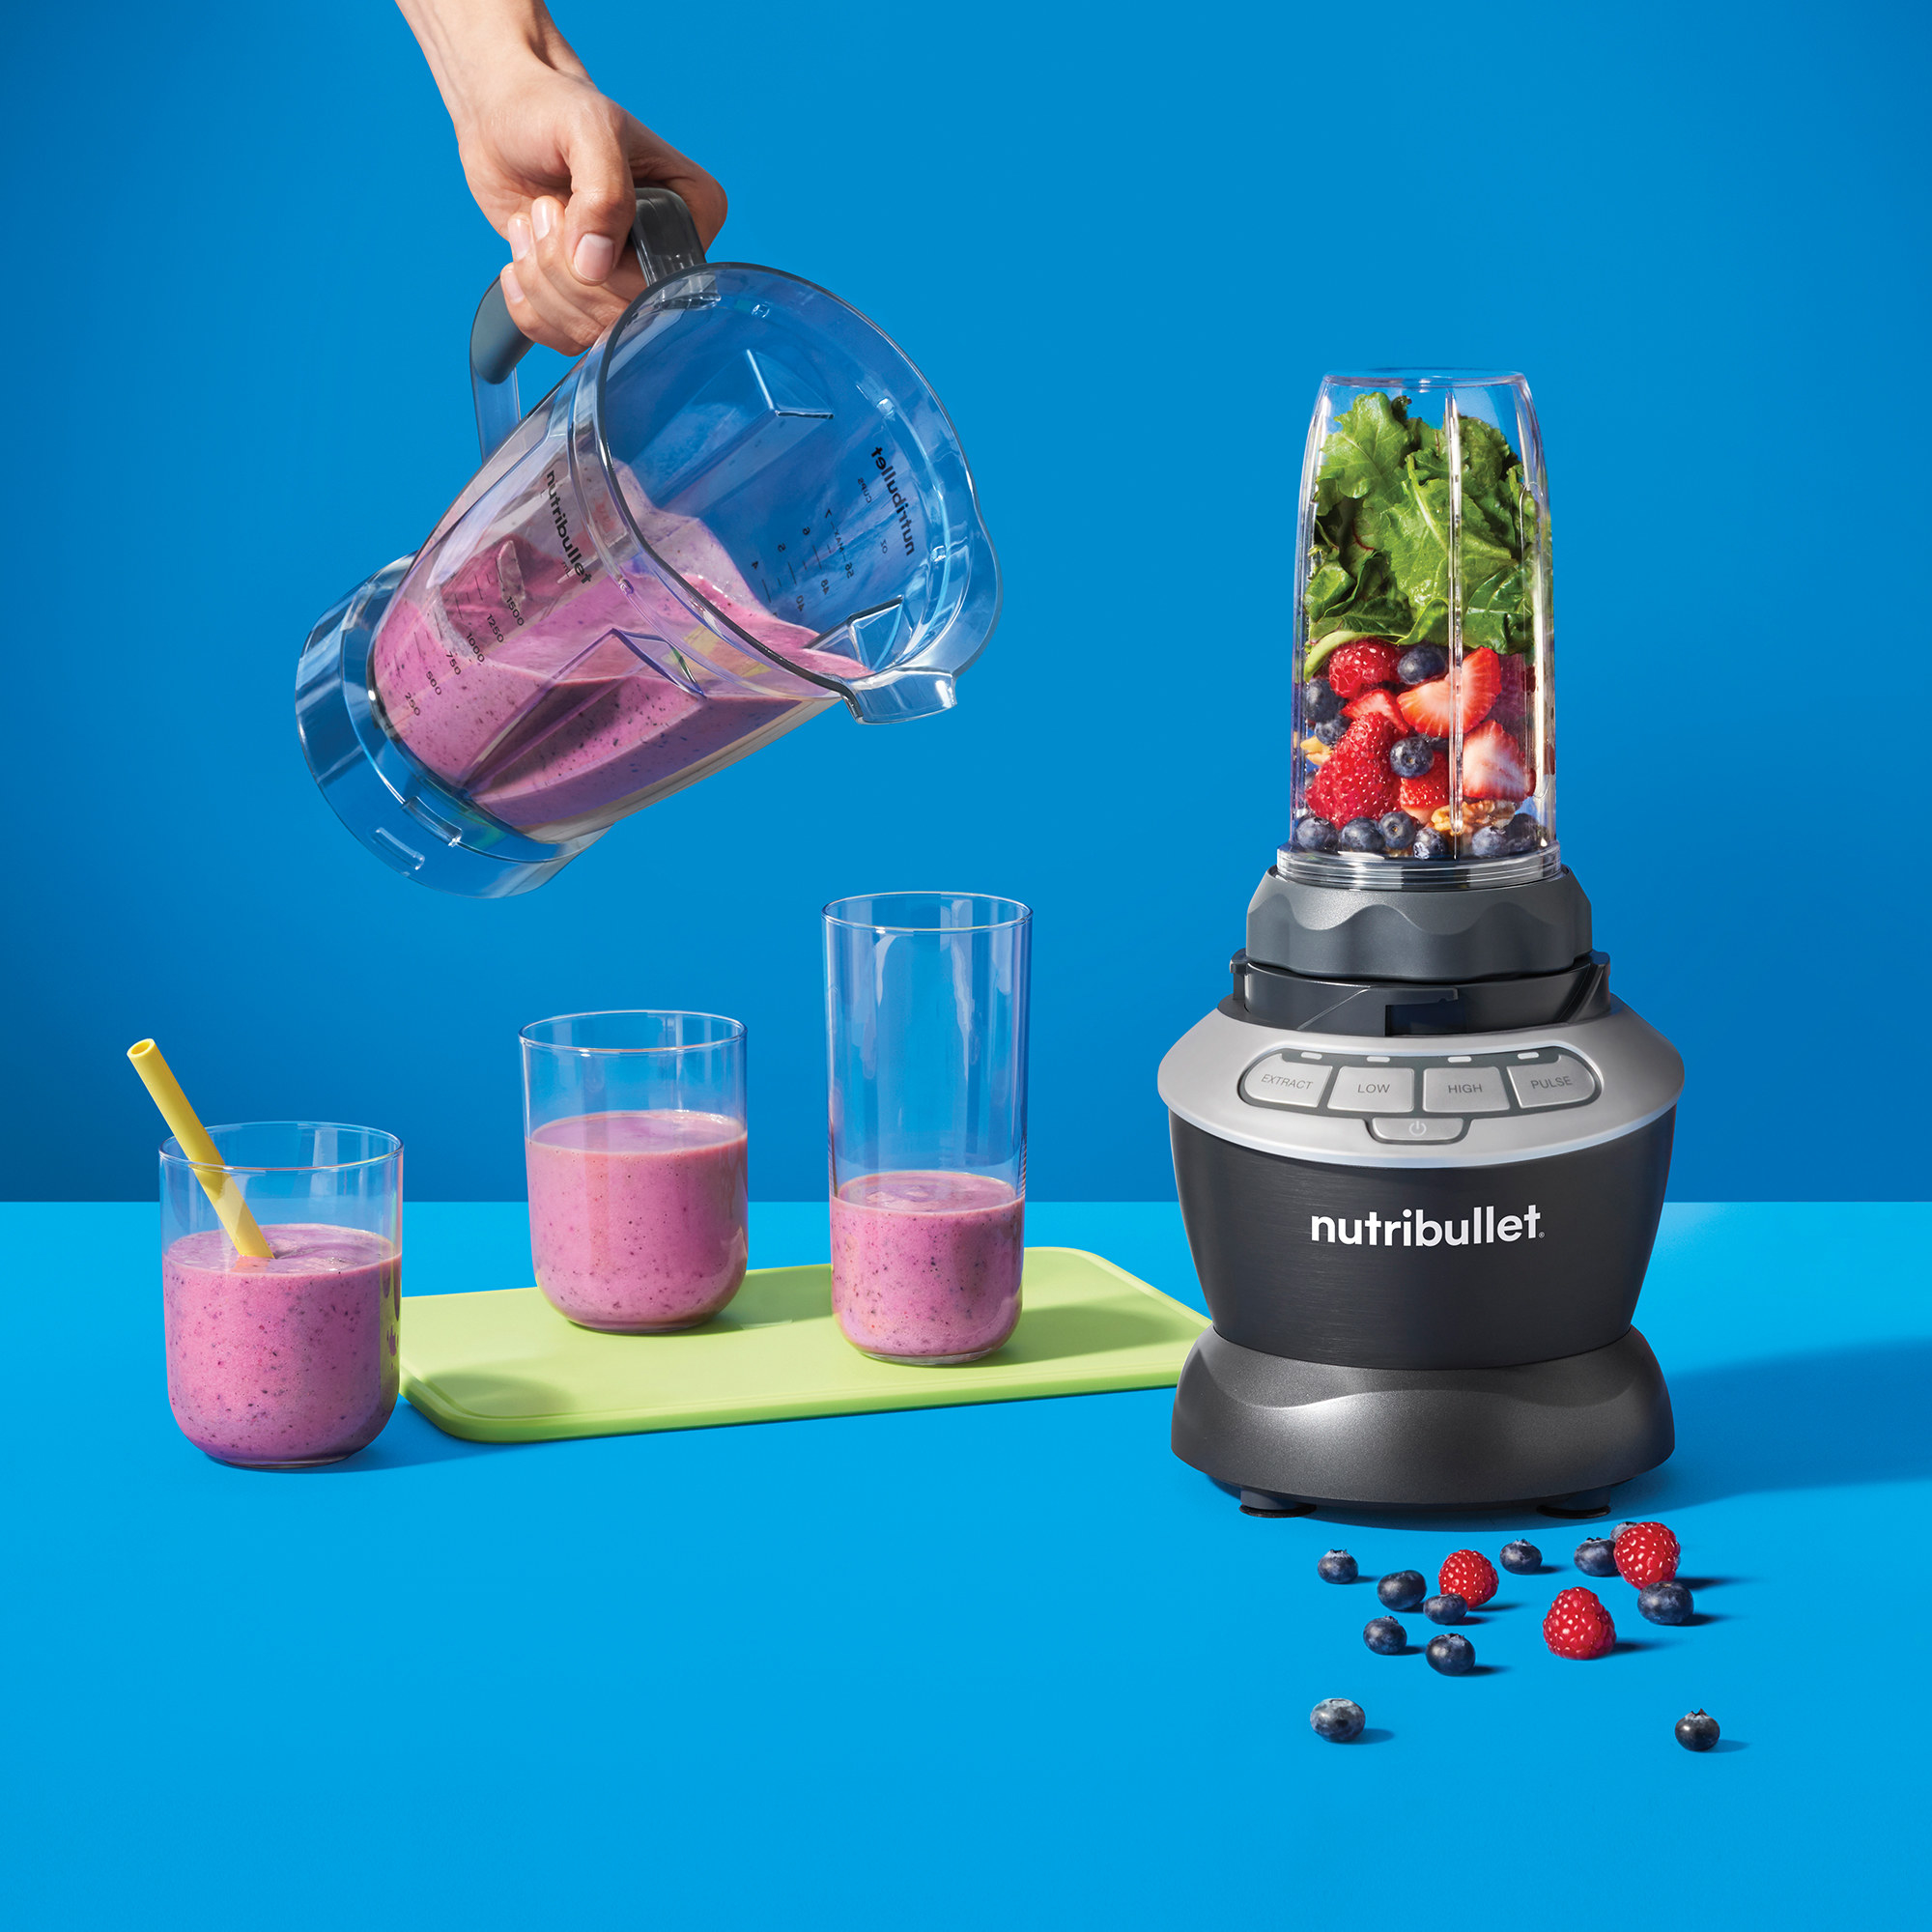 The blender shown with the single-serving cup on it, and someone pouring a smoothie out of the larger container